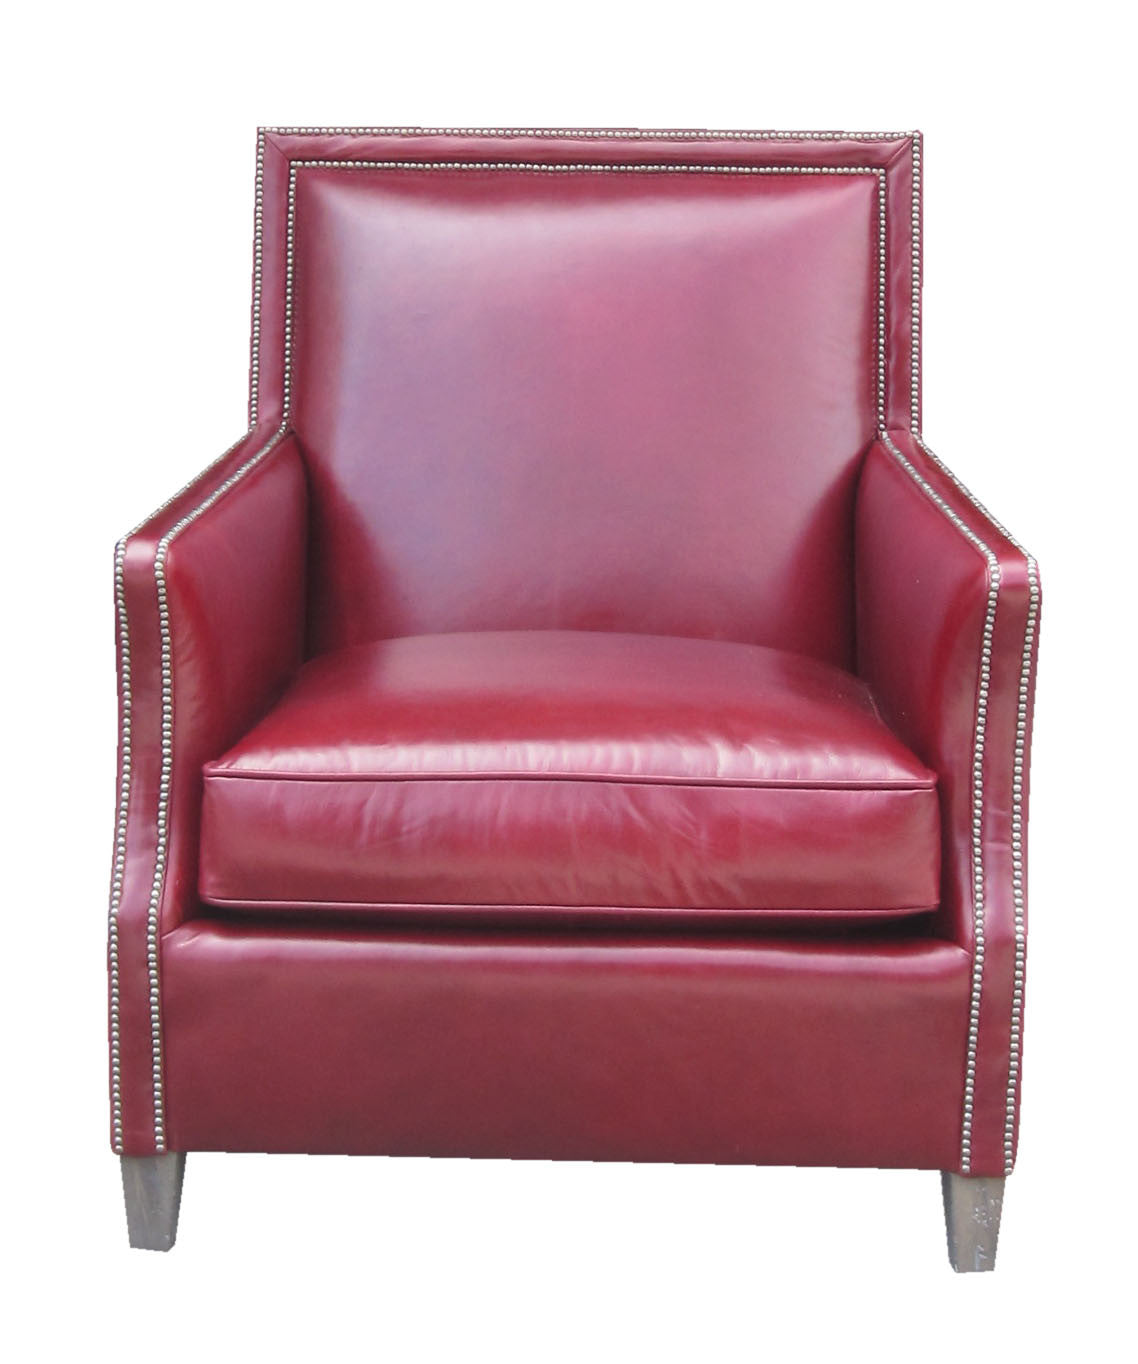 Scarlett Chair